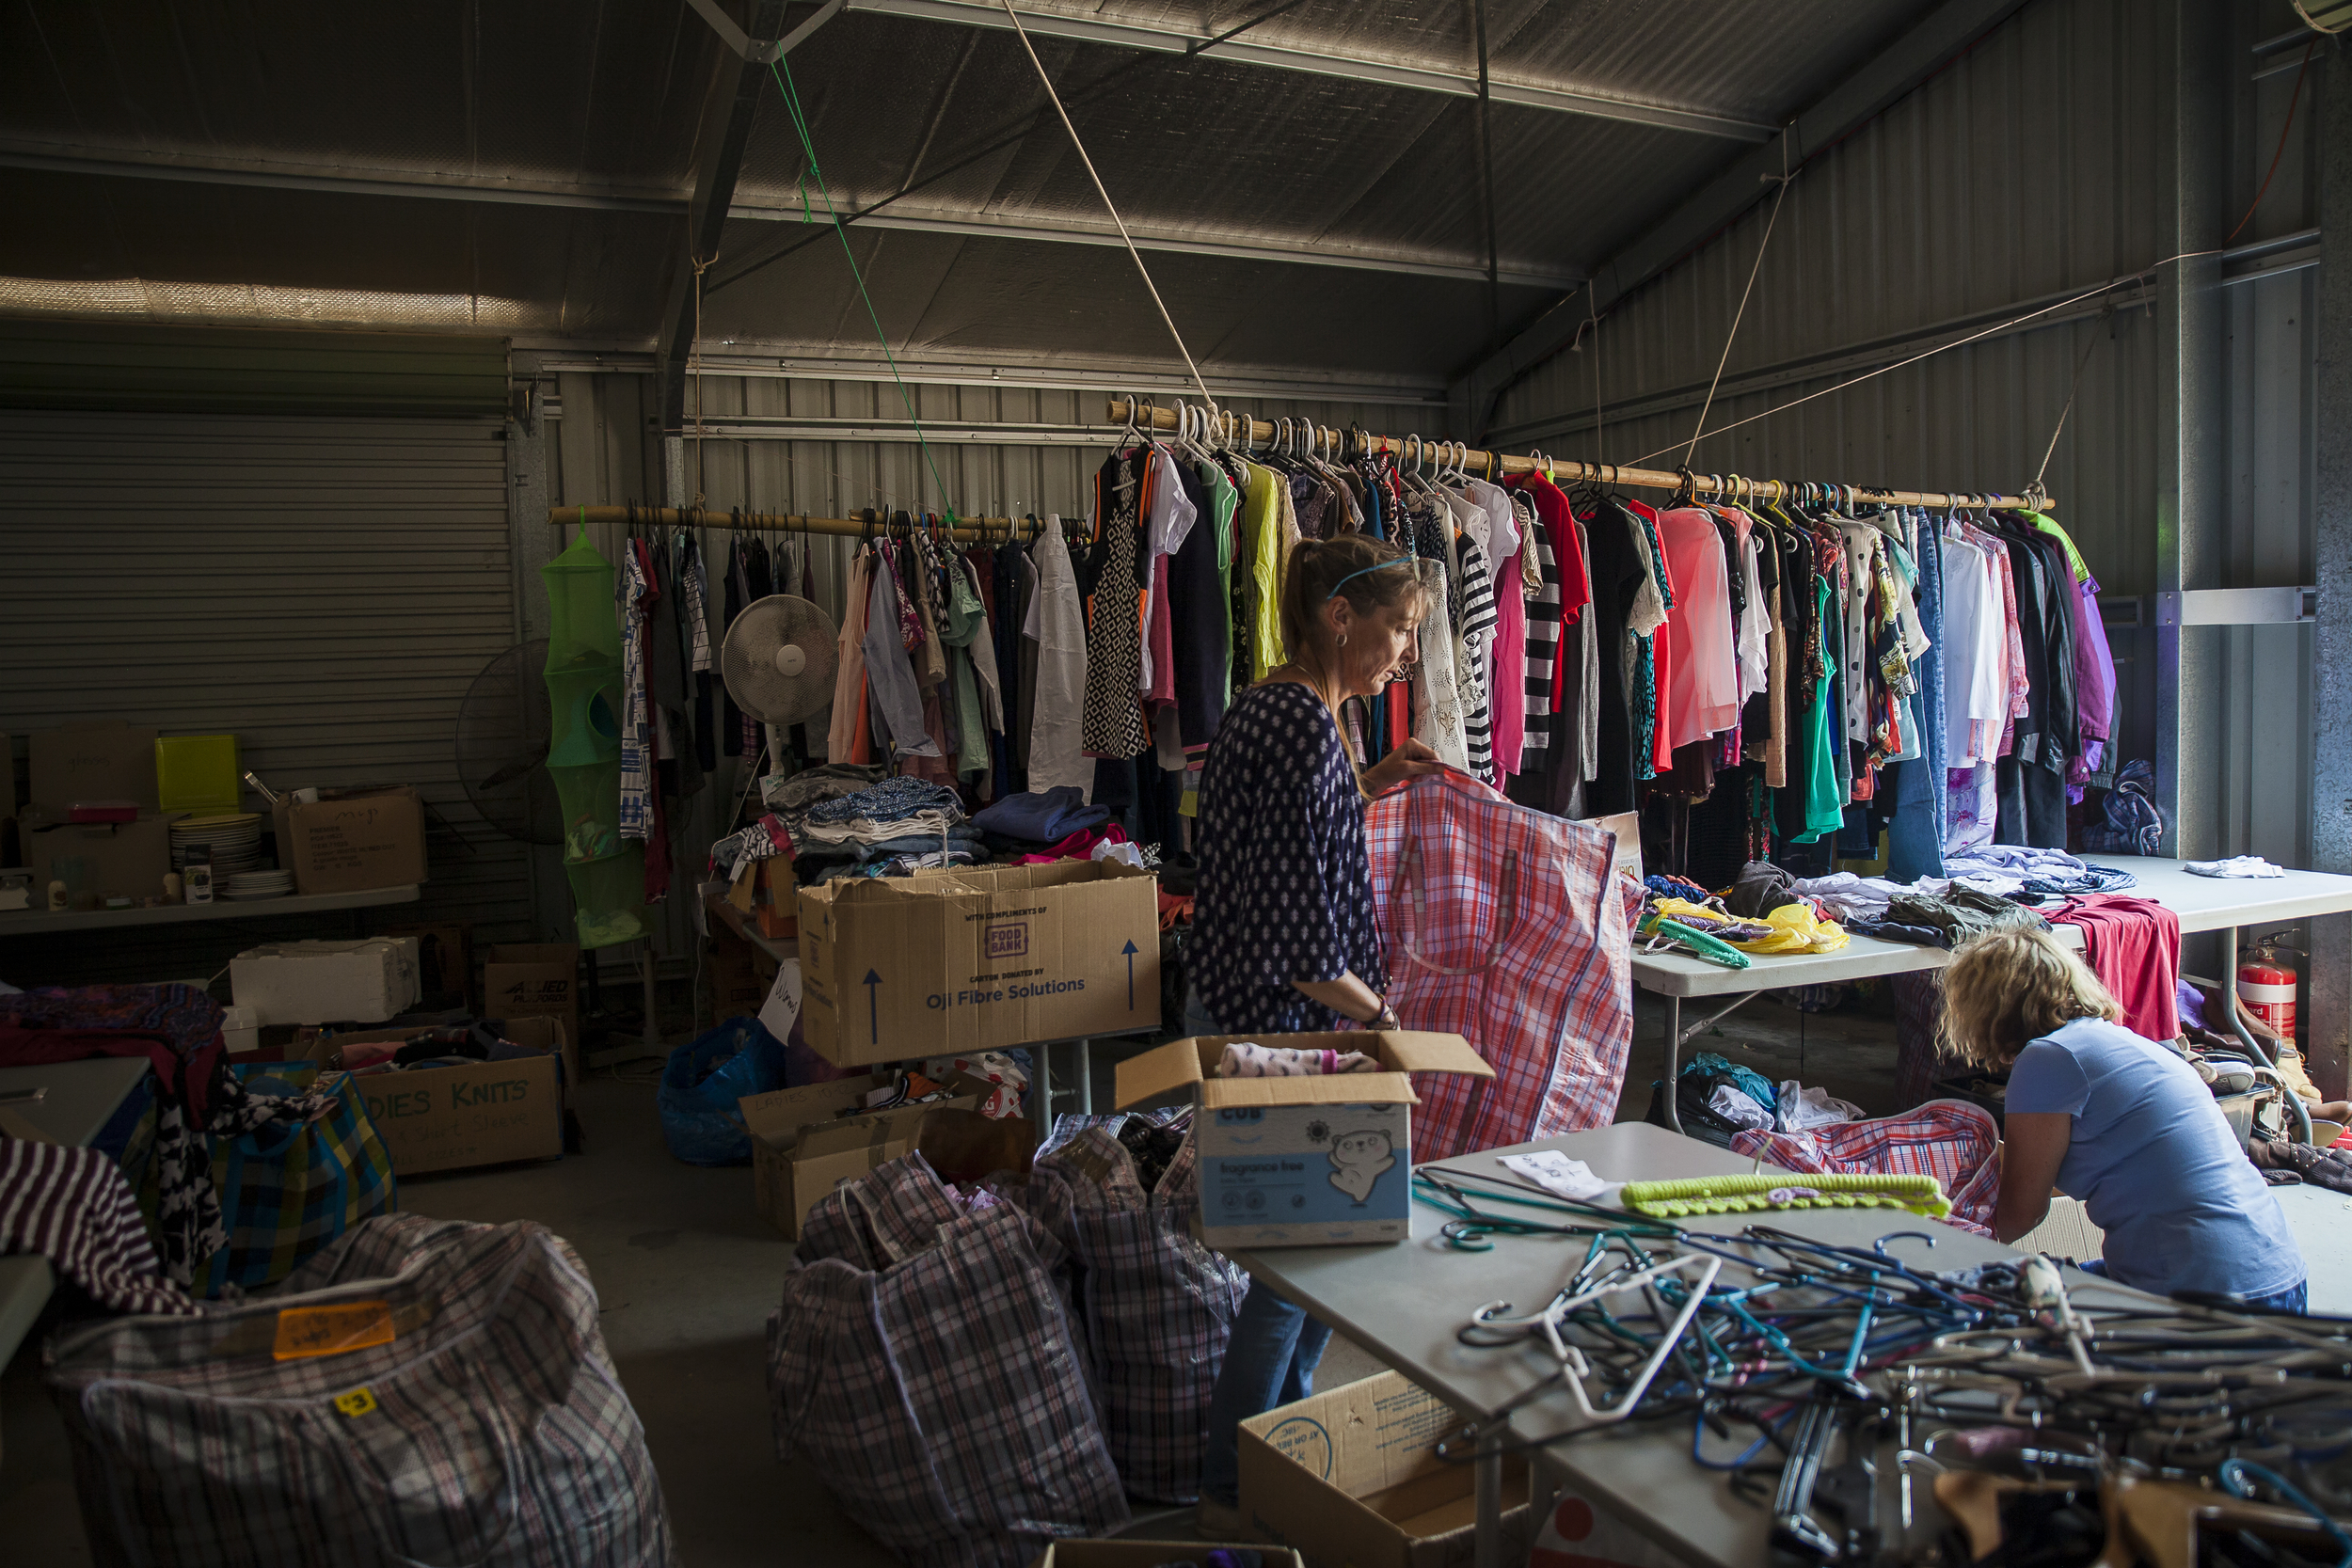 Community centre with clothing hung on rails and women sorting donations.